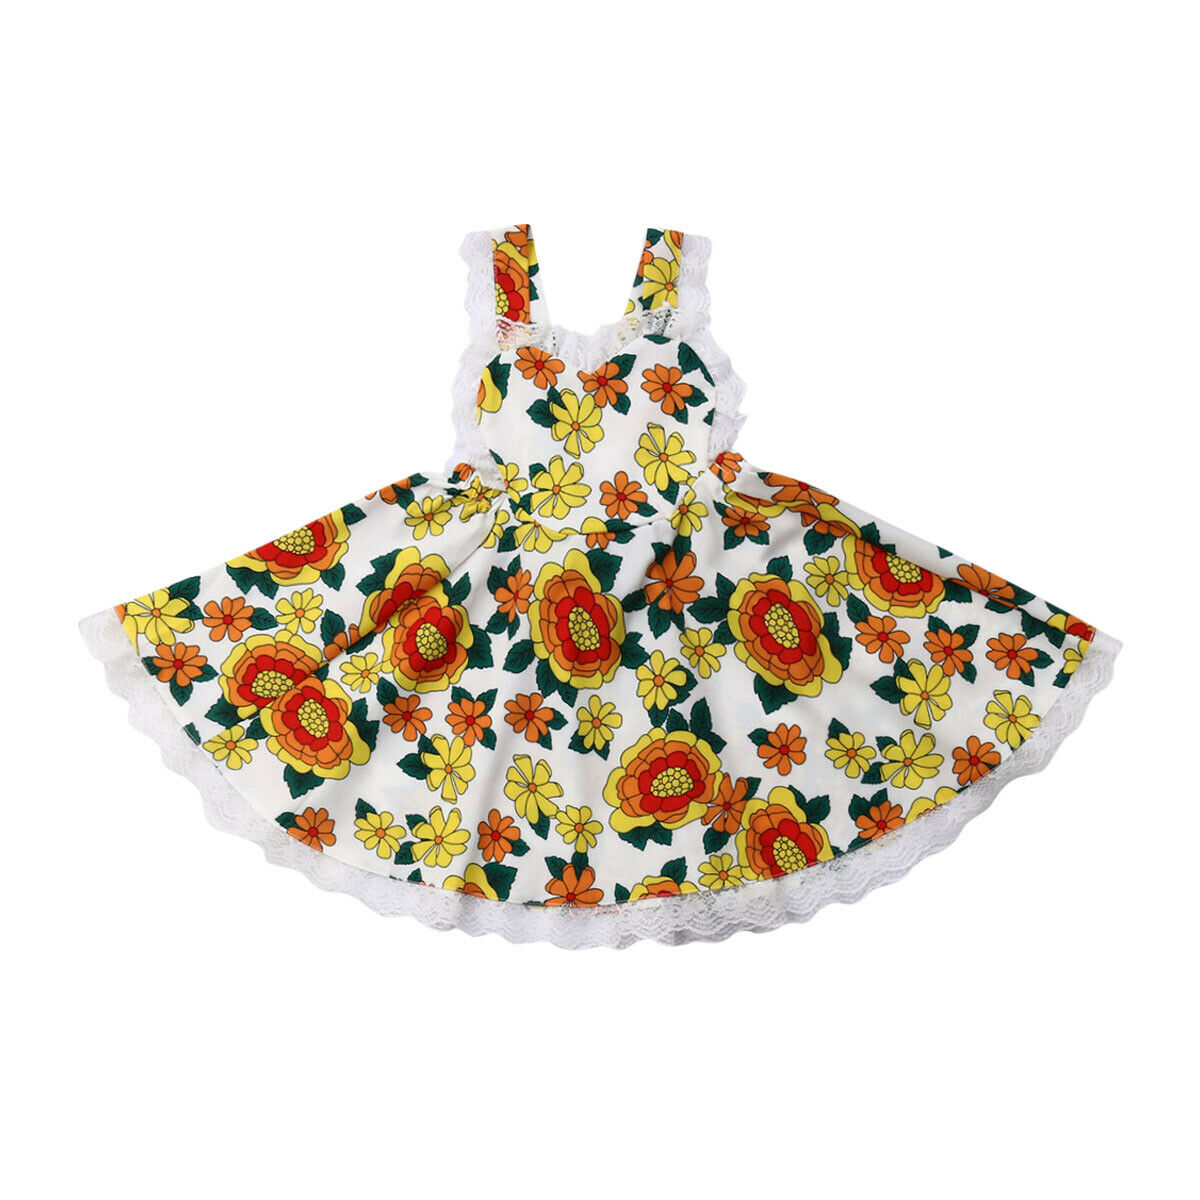 1-6Y Summer Toddler Kids Baby Girl Sleeveless Backless Lace Flower Dress Sundress Clothes1-6Y Summer Toddler Kids Baby Girl Sleeveless Backless Lace Flower Dress Sundress Clothes